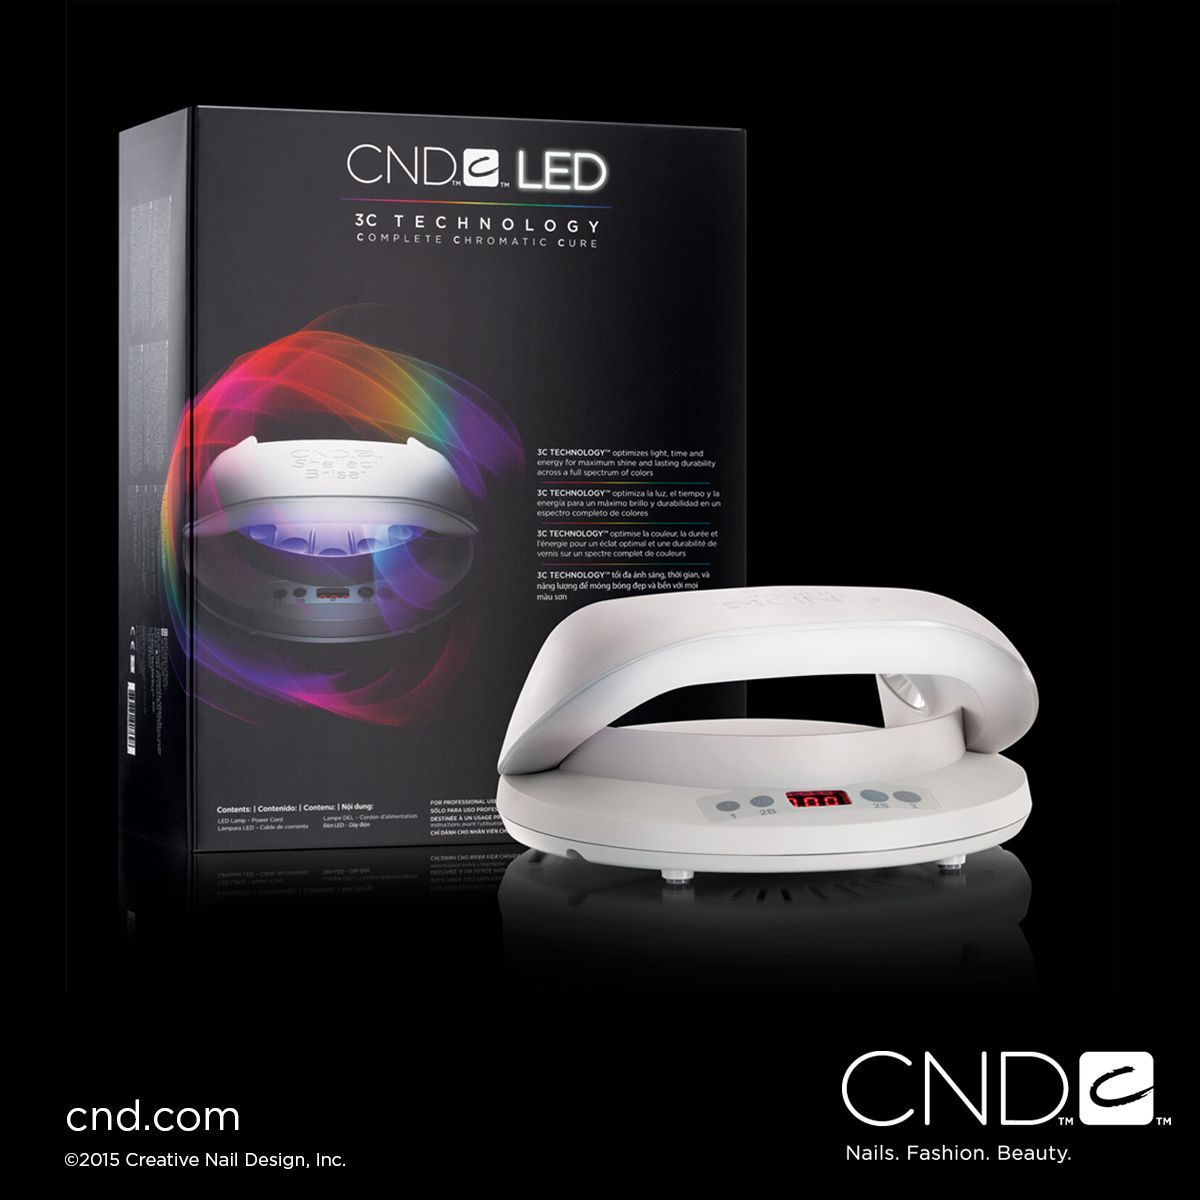 The NEW CND™ LED Lamp Is Designed To Completely And Evenly Cure CND™ SHELLAC